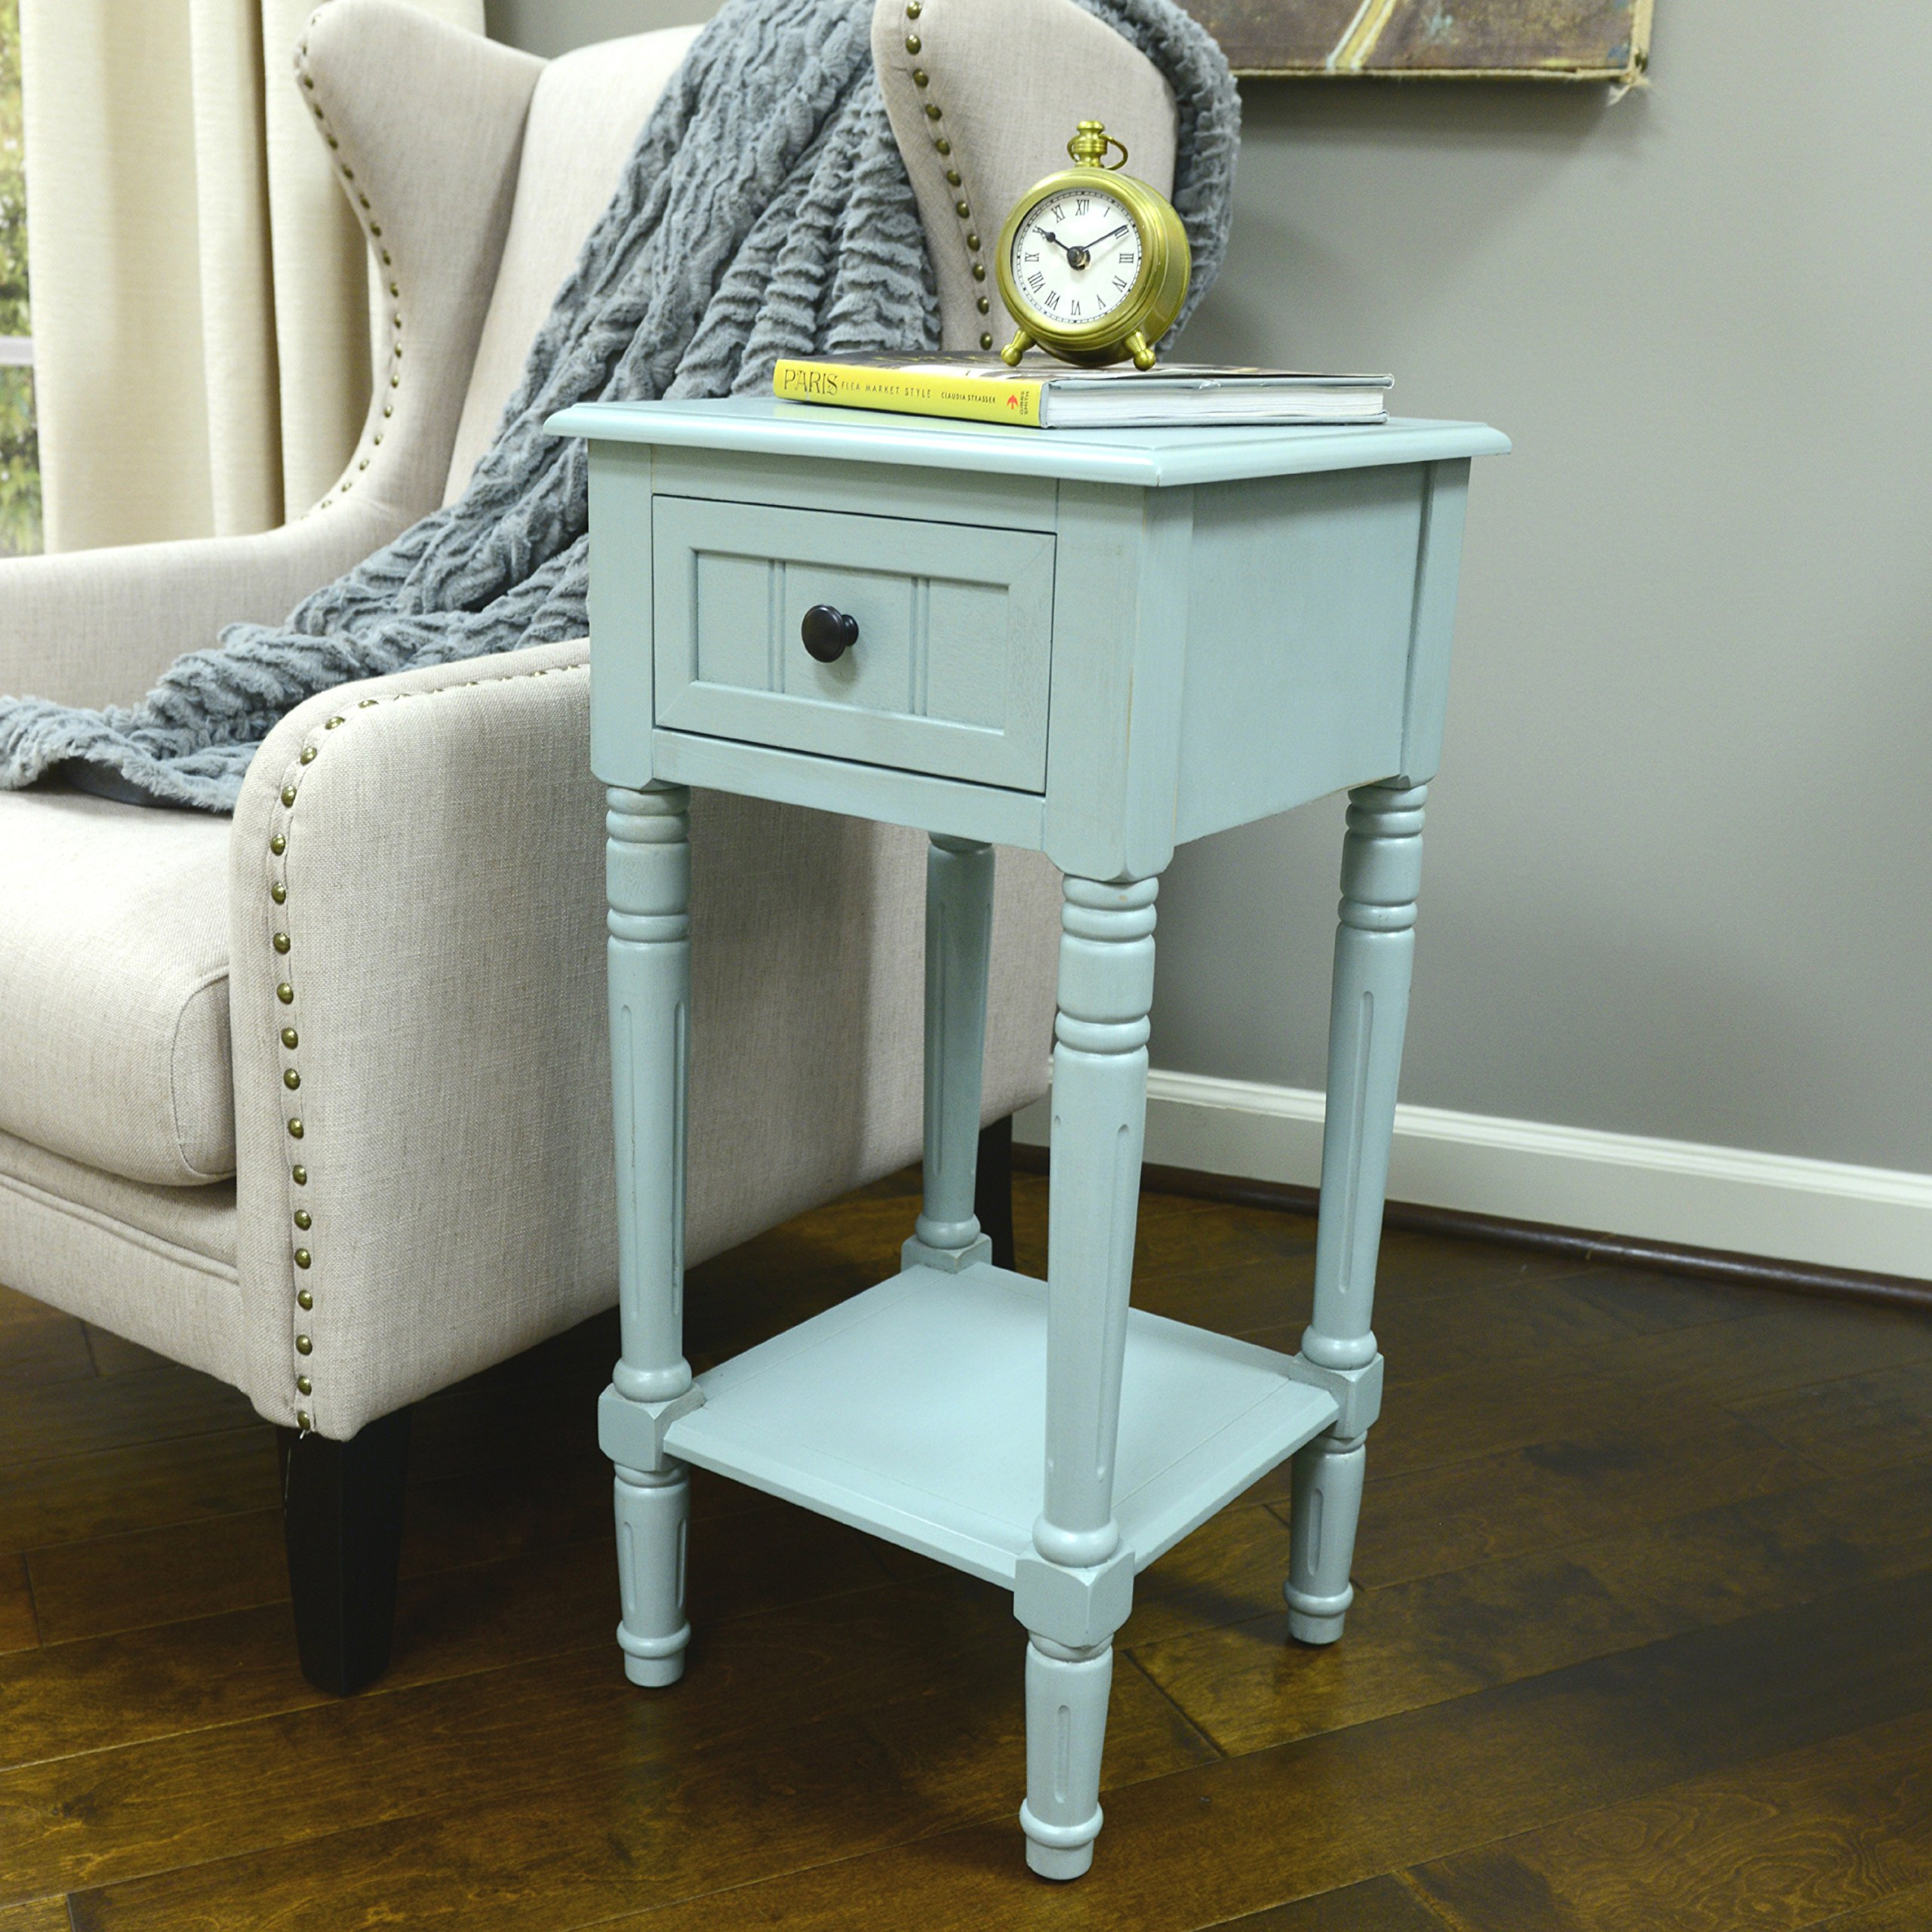 decor therapy simplify one drawer square accent table pgrwtfl pedestal antique iced blue inch side alexa echo dot white round bedside foot long console wood floor door threshold